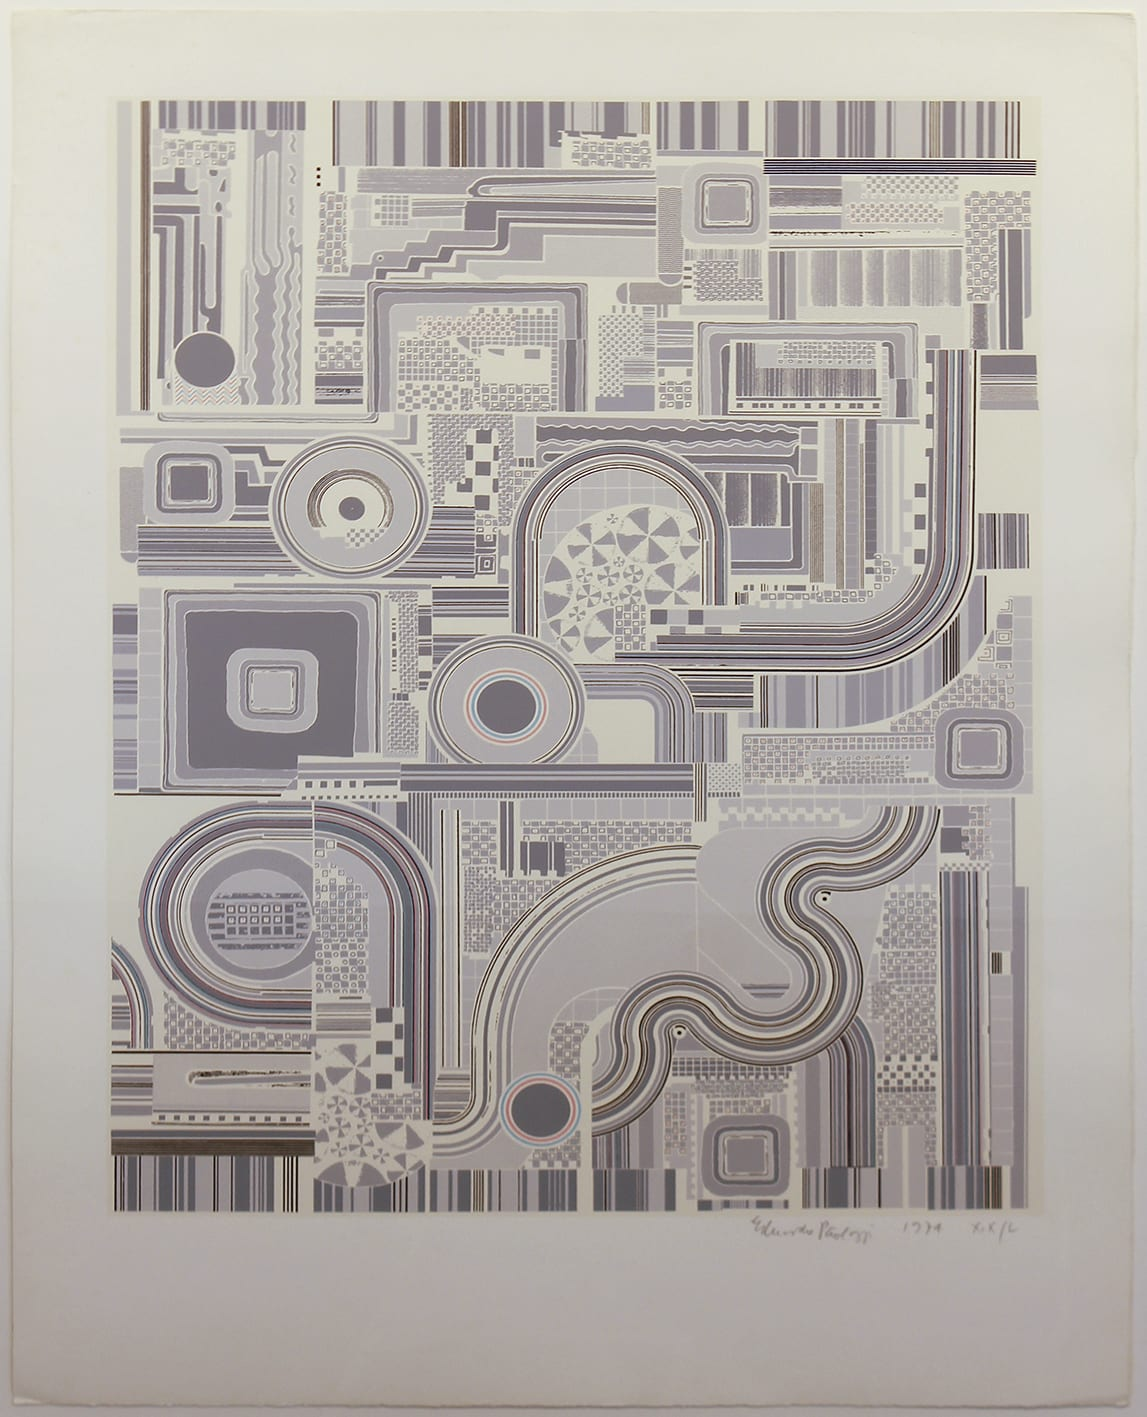 """<span class=""""link fancybox-details-link""""><a href=""""/artists/180-eduardo-paolozzi-cbe-ra/works/4880-eduardo-paolozzi-cbe-ra-untitled-grey-1974/"""">View Detail Page</a></span><div class=""""artist""""><strong>Eduardo Paolozzi CBE RA</strong></div> 1925-2005 <div class=""""title""""><em>Untitled Grey</em>, 1974</div> <div class=""""signed_and_dated"""">signed, dated and editioned in pencil</div> <div class=""""medium"""">screenprint printed in colours, on Firenze wove, signed, dated and numbered in pencil</div> <div class=""""dimensions"""">image size: 64 x 49 cm</div> <div class=""""edition_details"""">Proof number XIX / L aside from the edition of 100</div><div class=""""copyright_line"""">© The Estate of Eduardo Paolozzi</div>"""